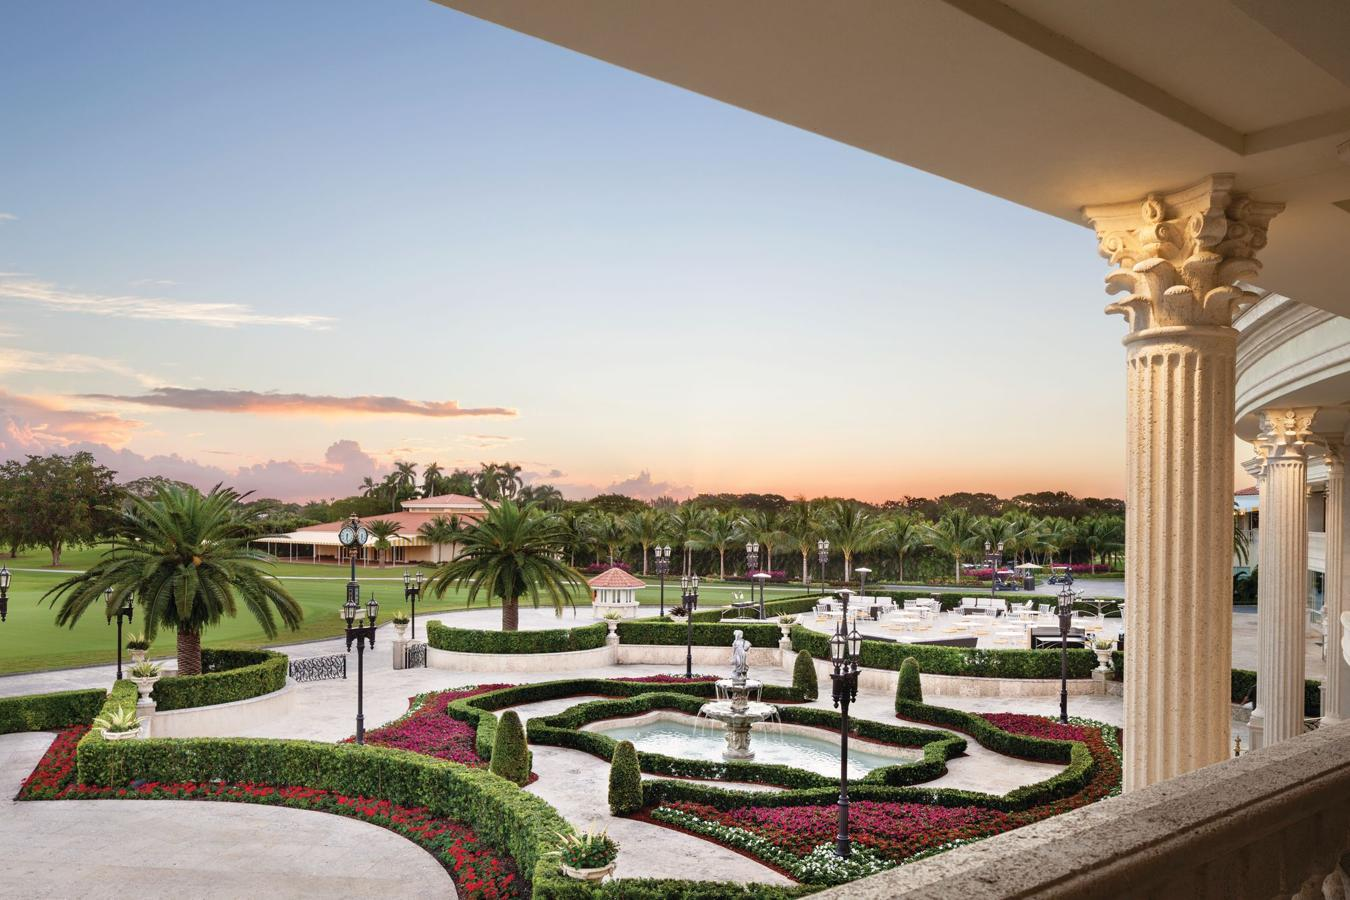 Trump National Doral Miami Golf Resort